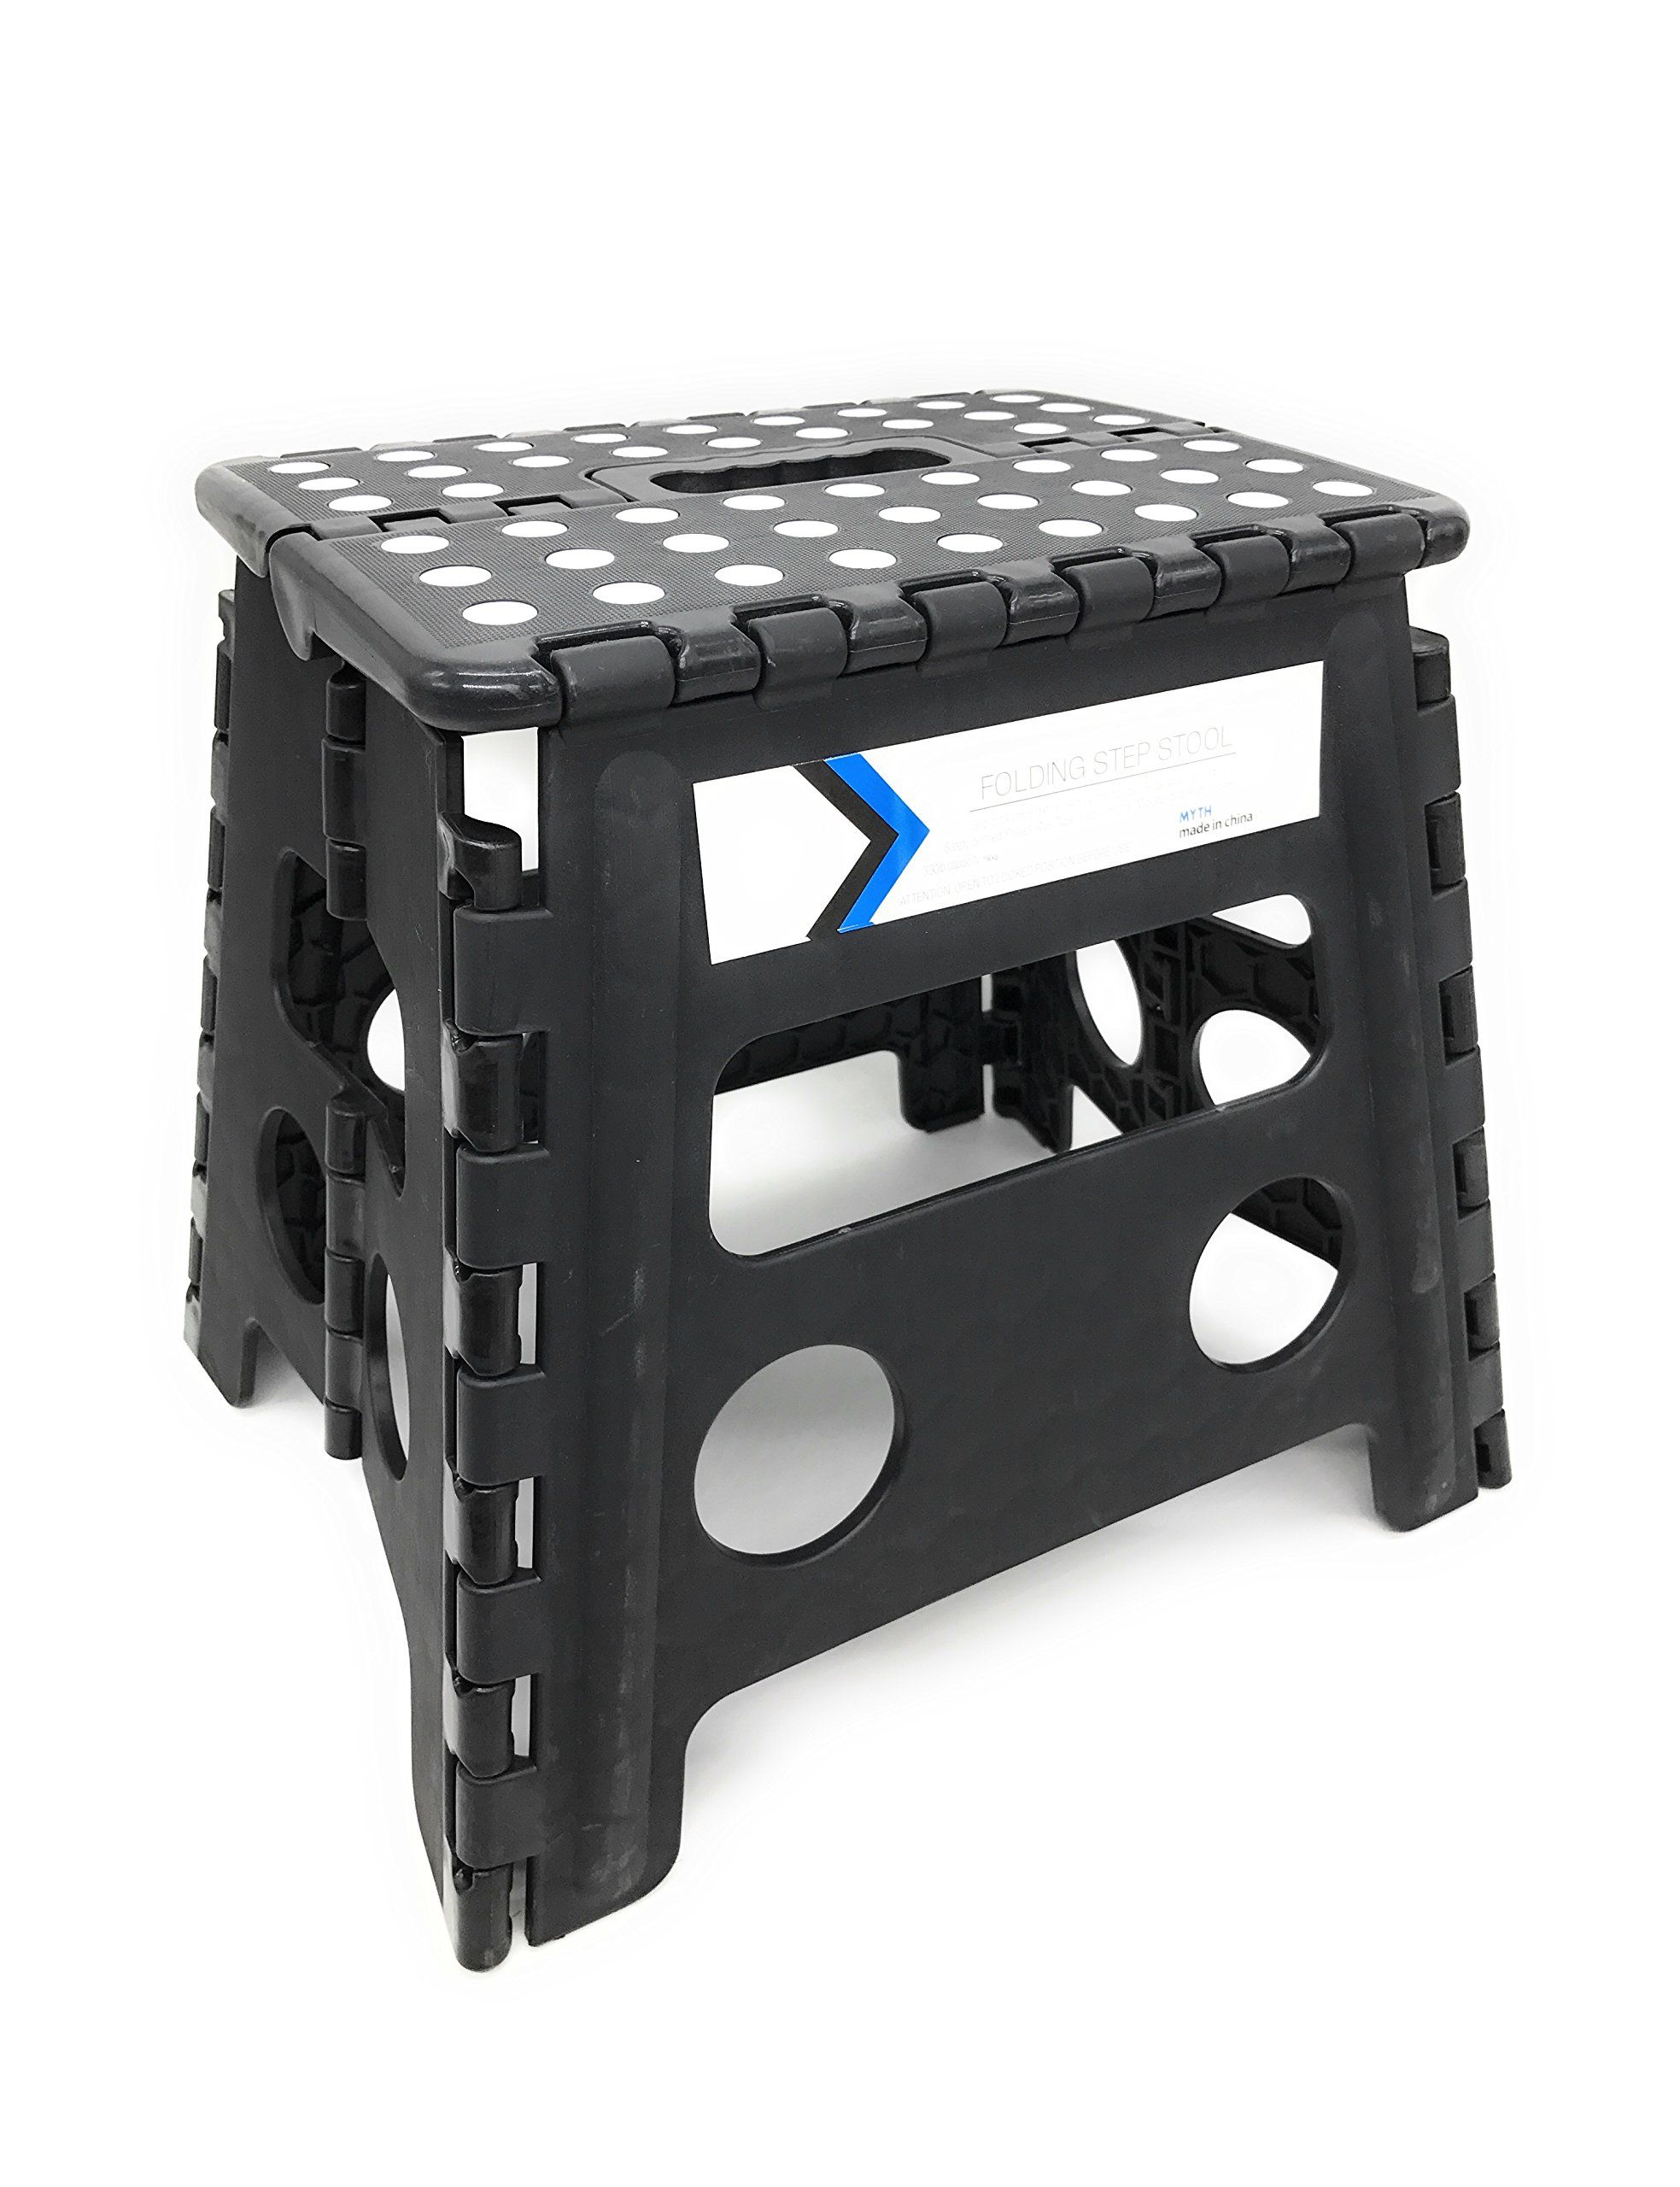 Folding Step Stool 13 Inches Height by Myth with Anti-Slip Surface ...